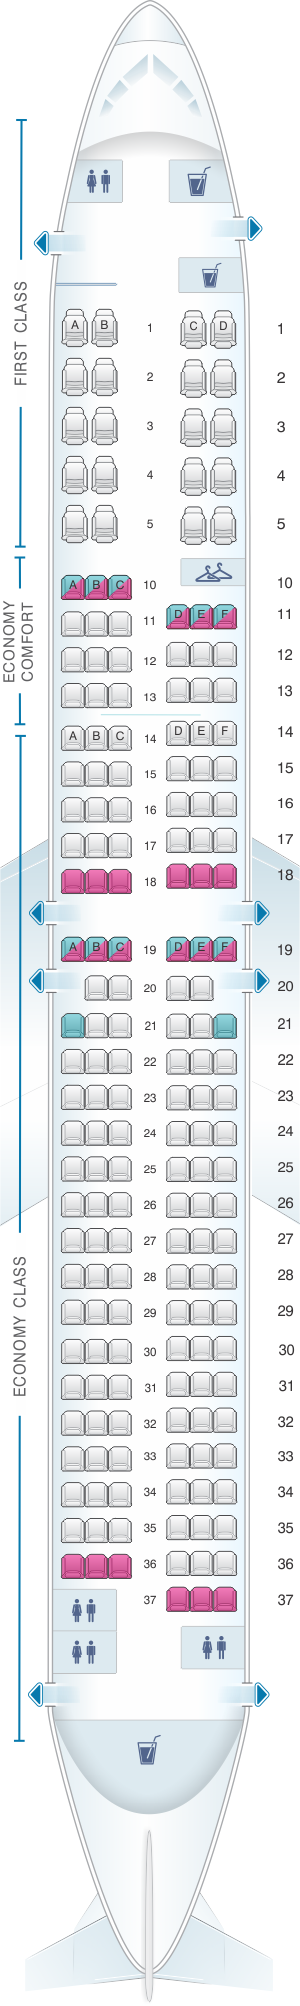 Seat map for Delta Air Lines Boeing B737 900ER (739)